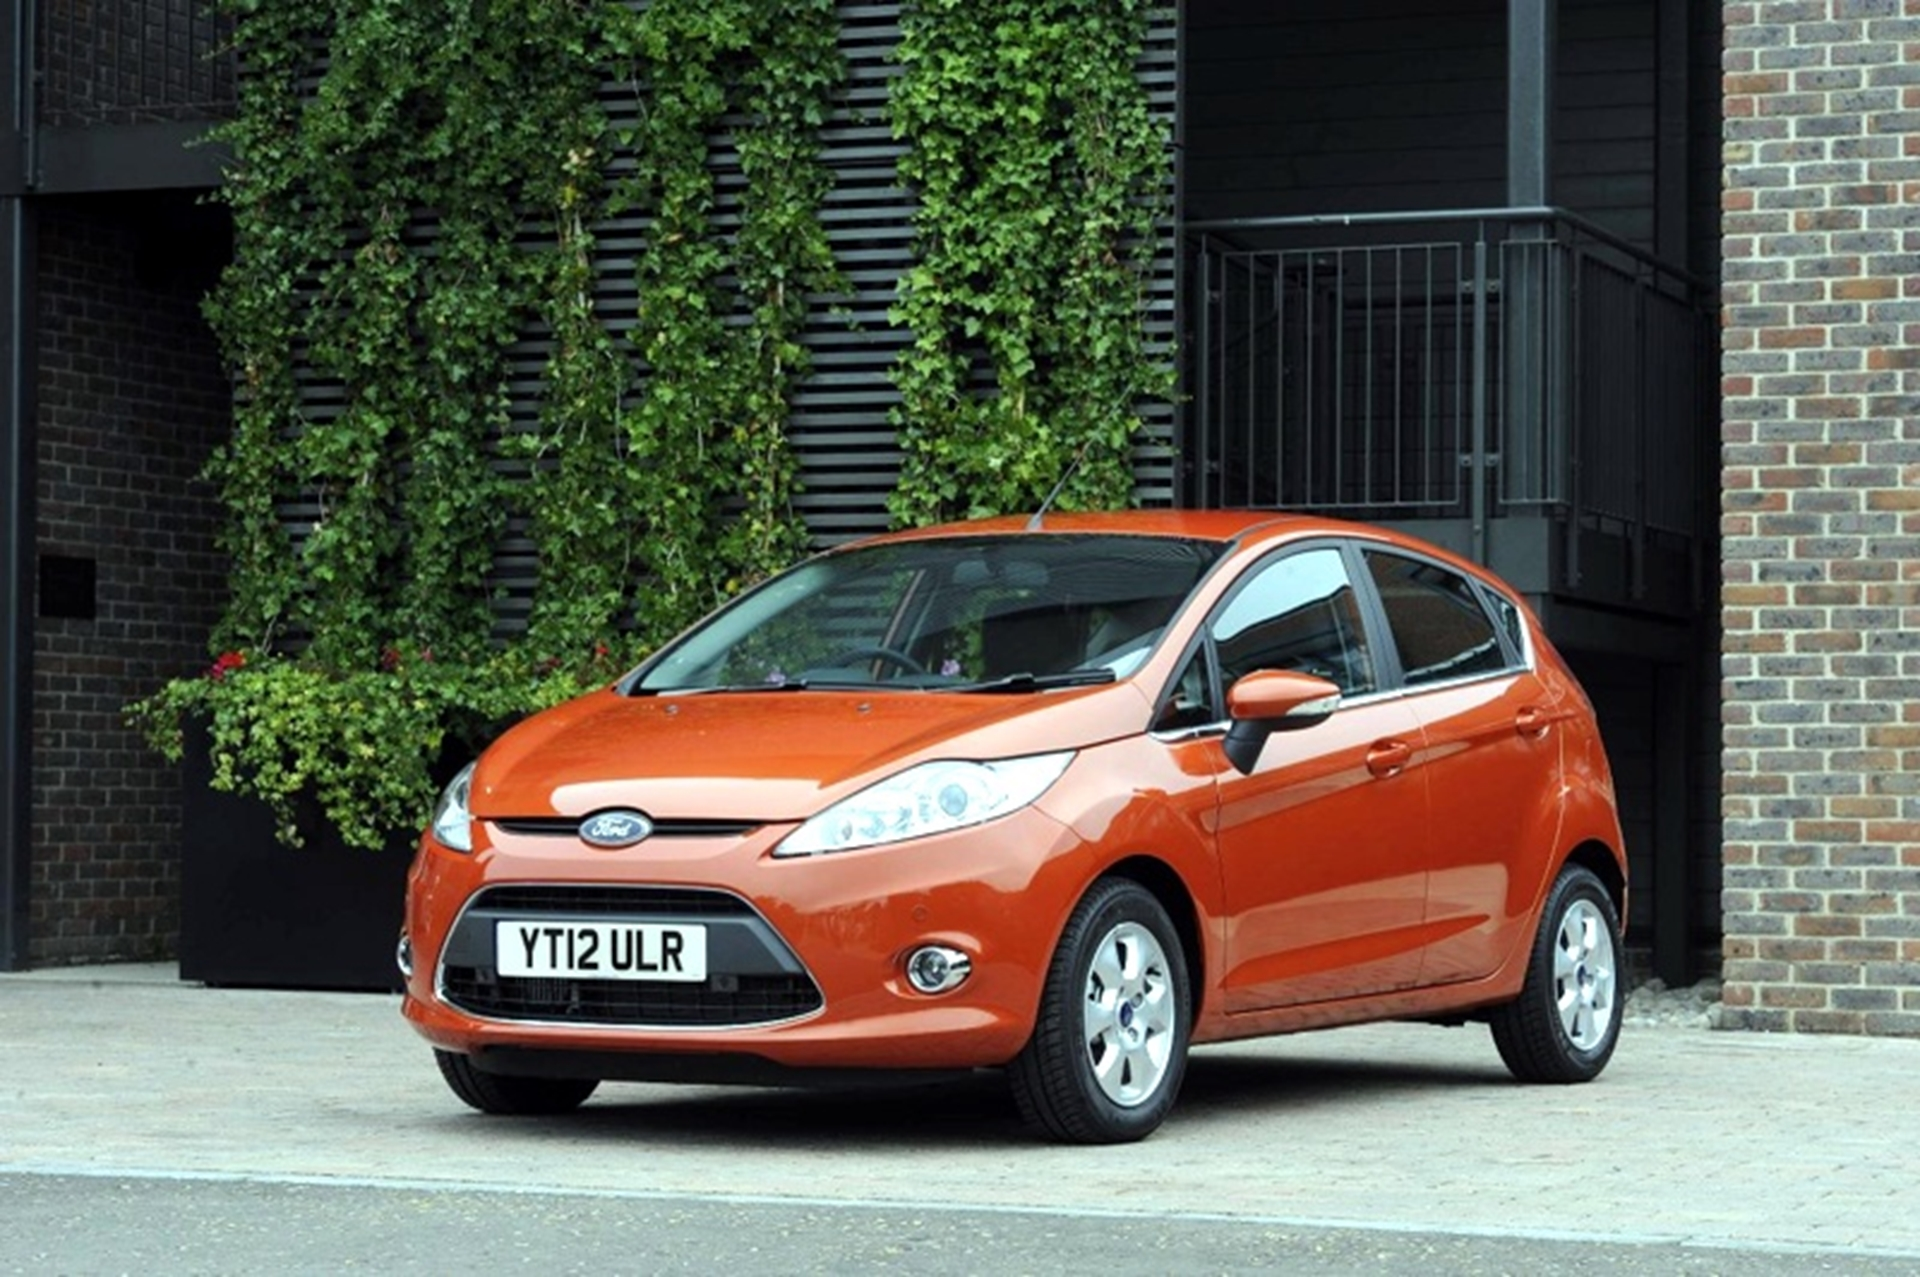 Ford Fiesta is the UK best-selling vehicle for the month of March